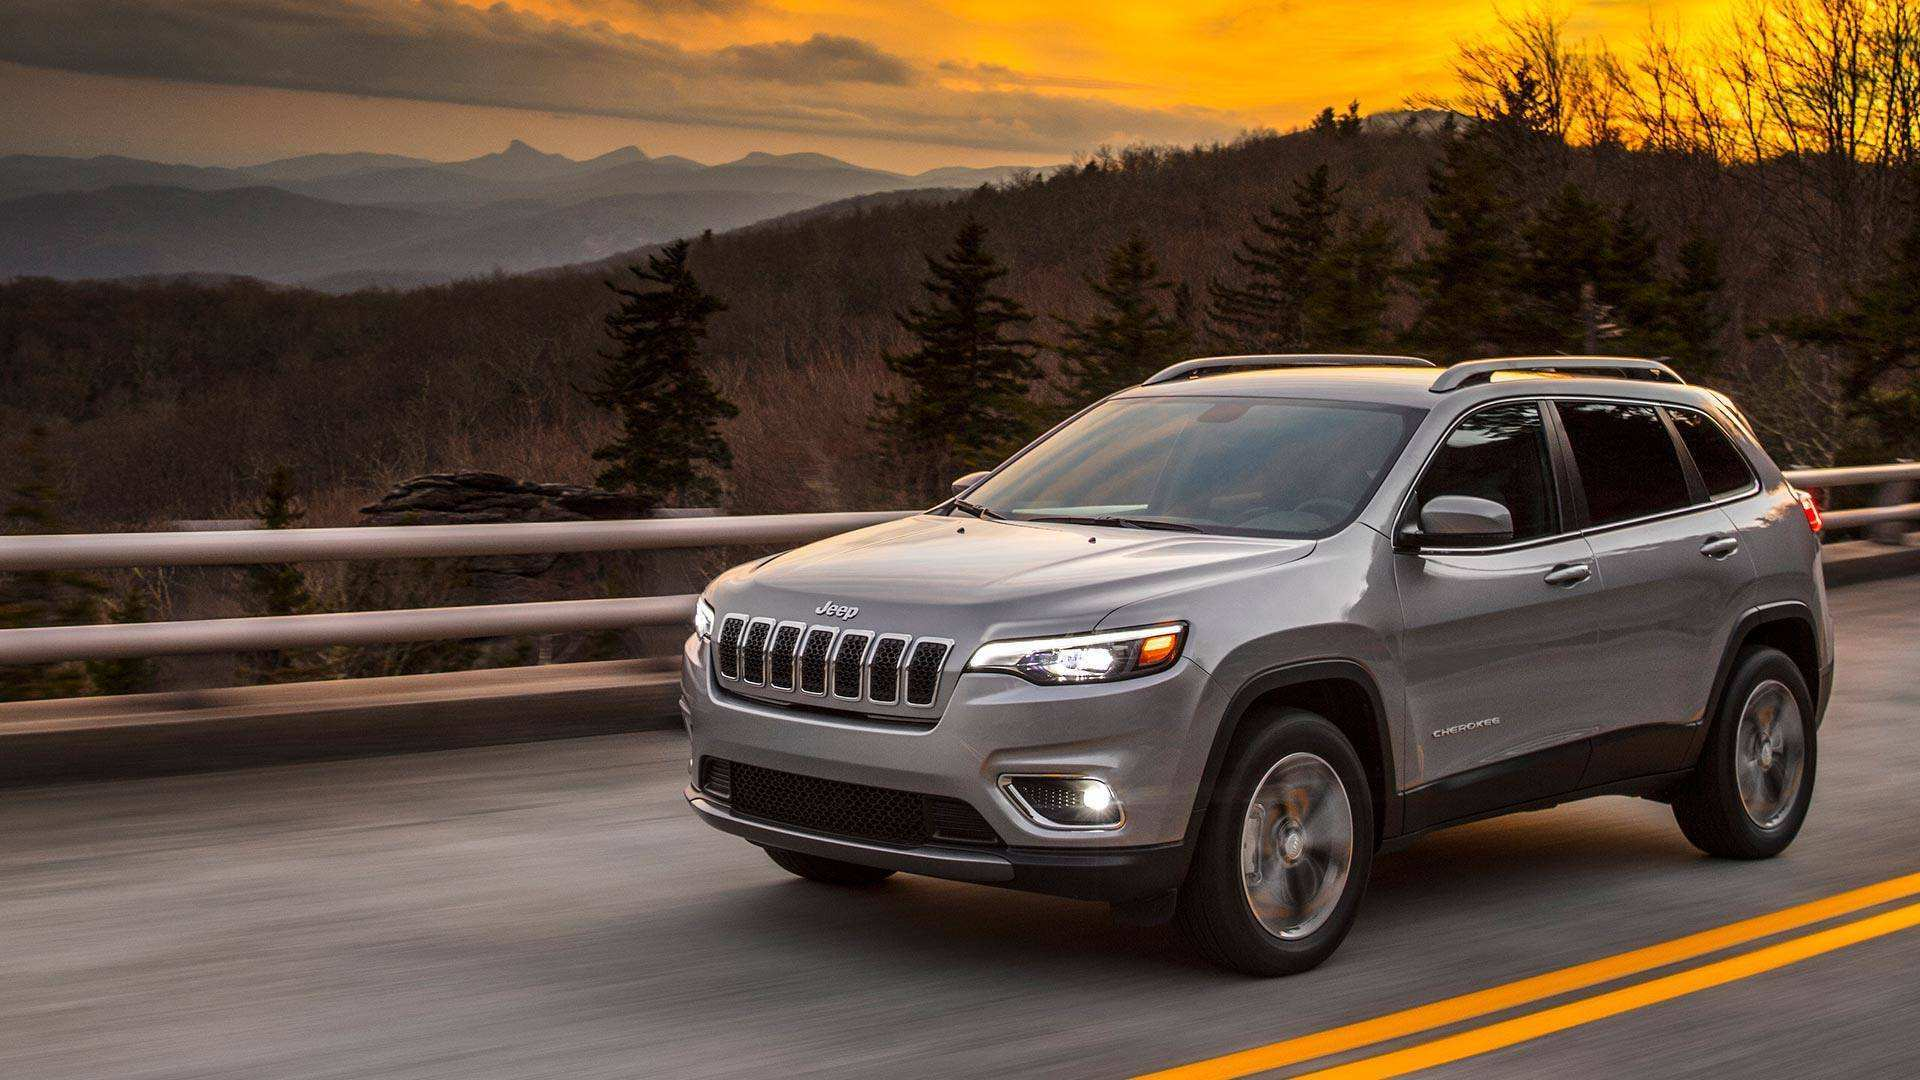 60 All New 2019 Jeep Wagoneer Pricing for 2019 Jeep Wagoneer